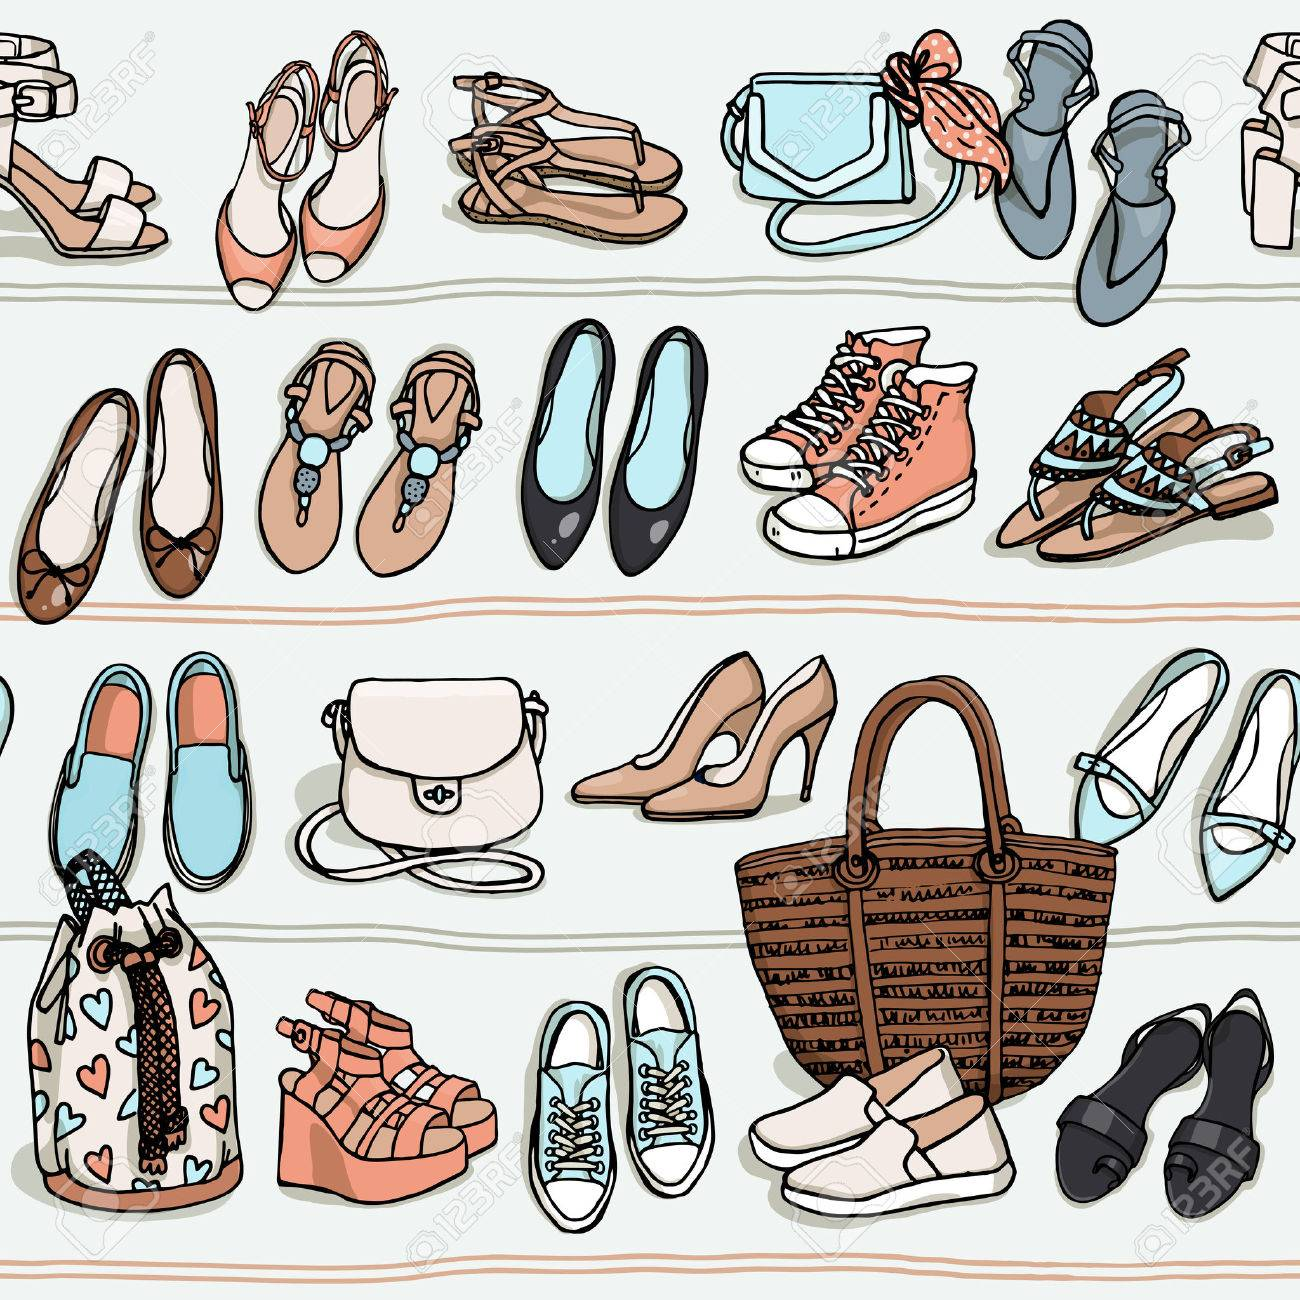 acaaa476a0 Hand drawn vector seamless pattern of shoes bags and female fashion  accessories in pastel colors.